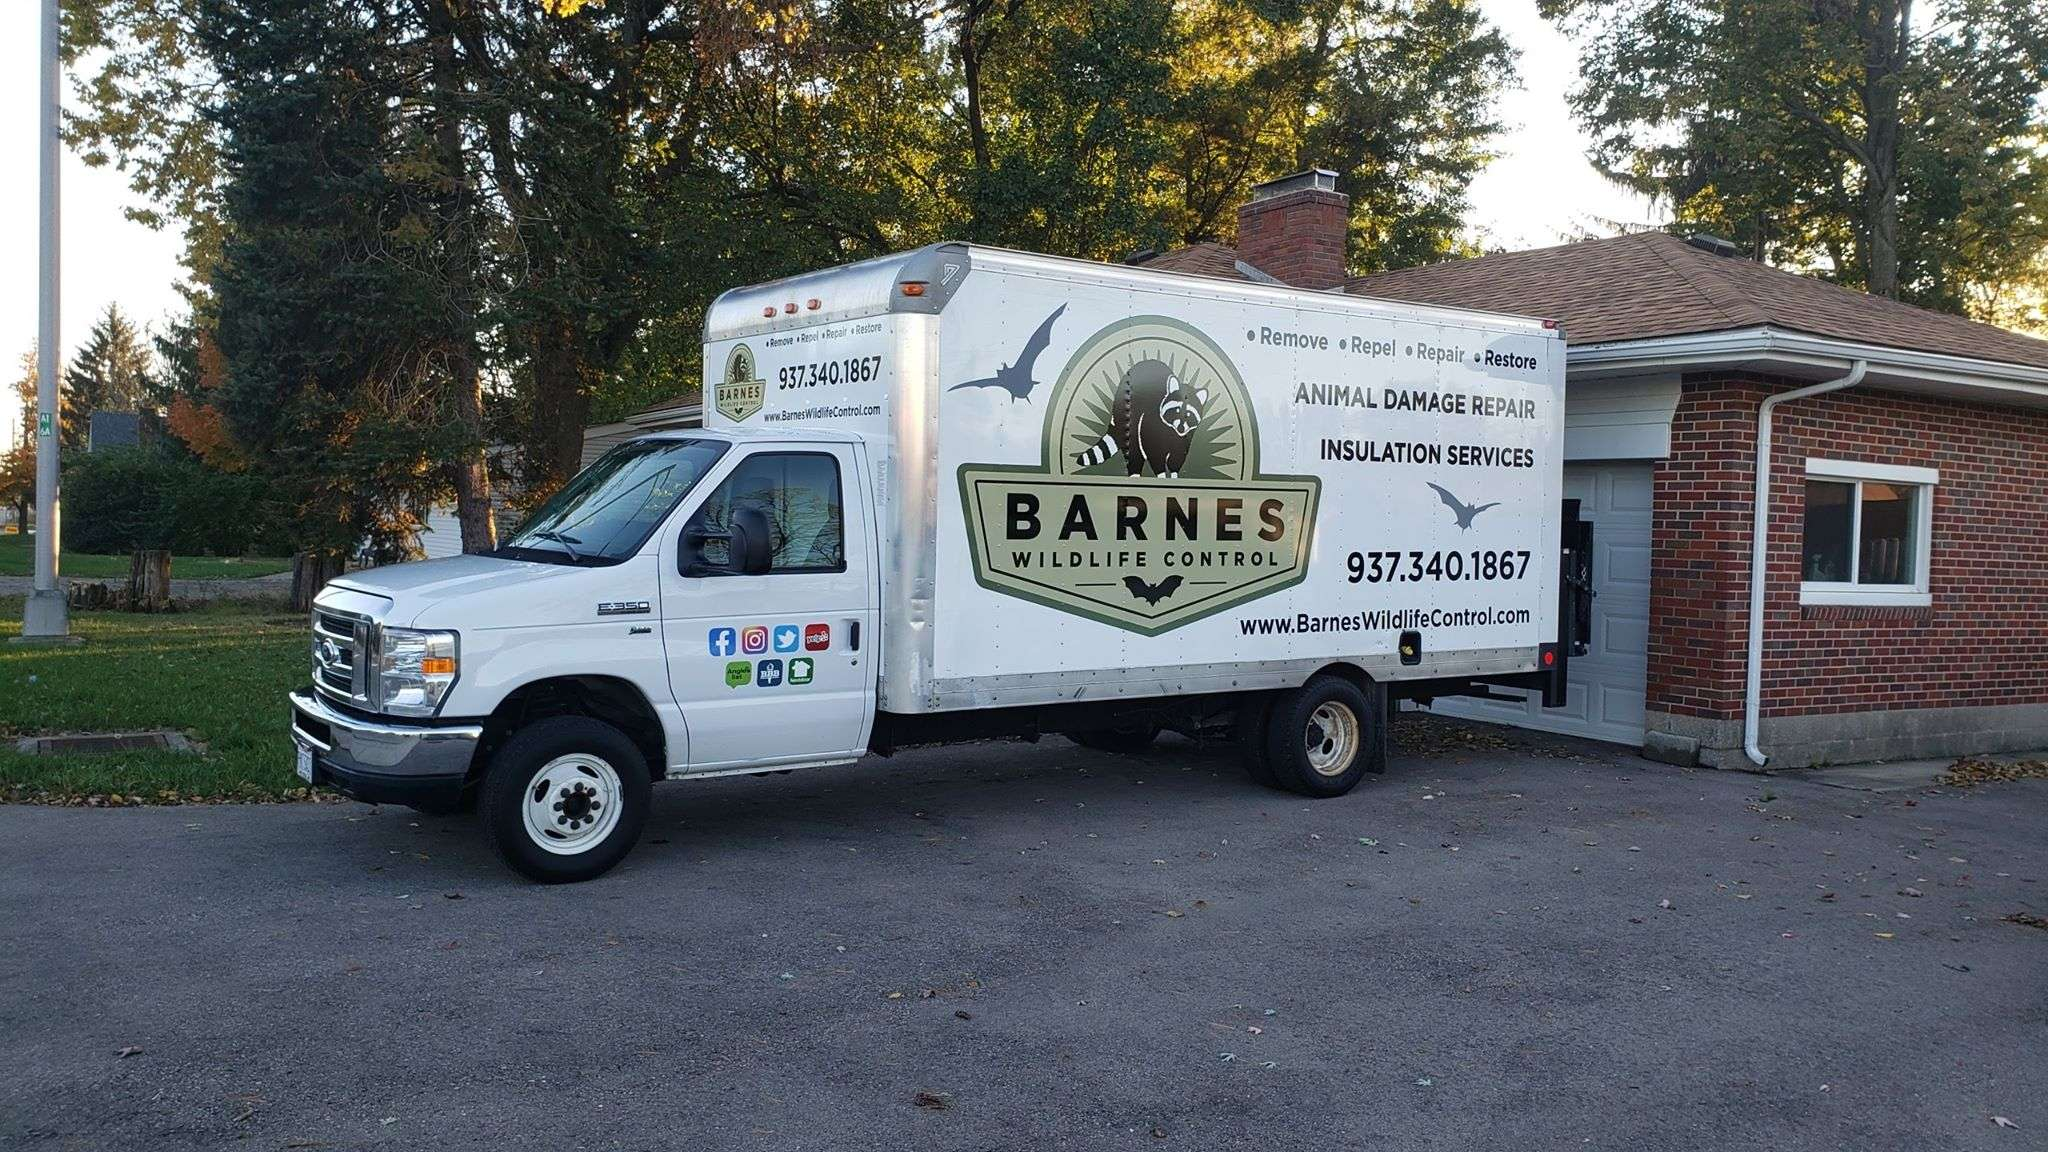 Montgomery County Animal Pest Removal Services photo of one of our animal damage repair and insulation services truck.